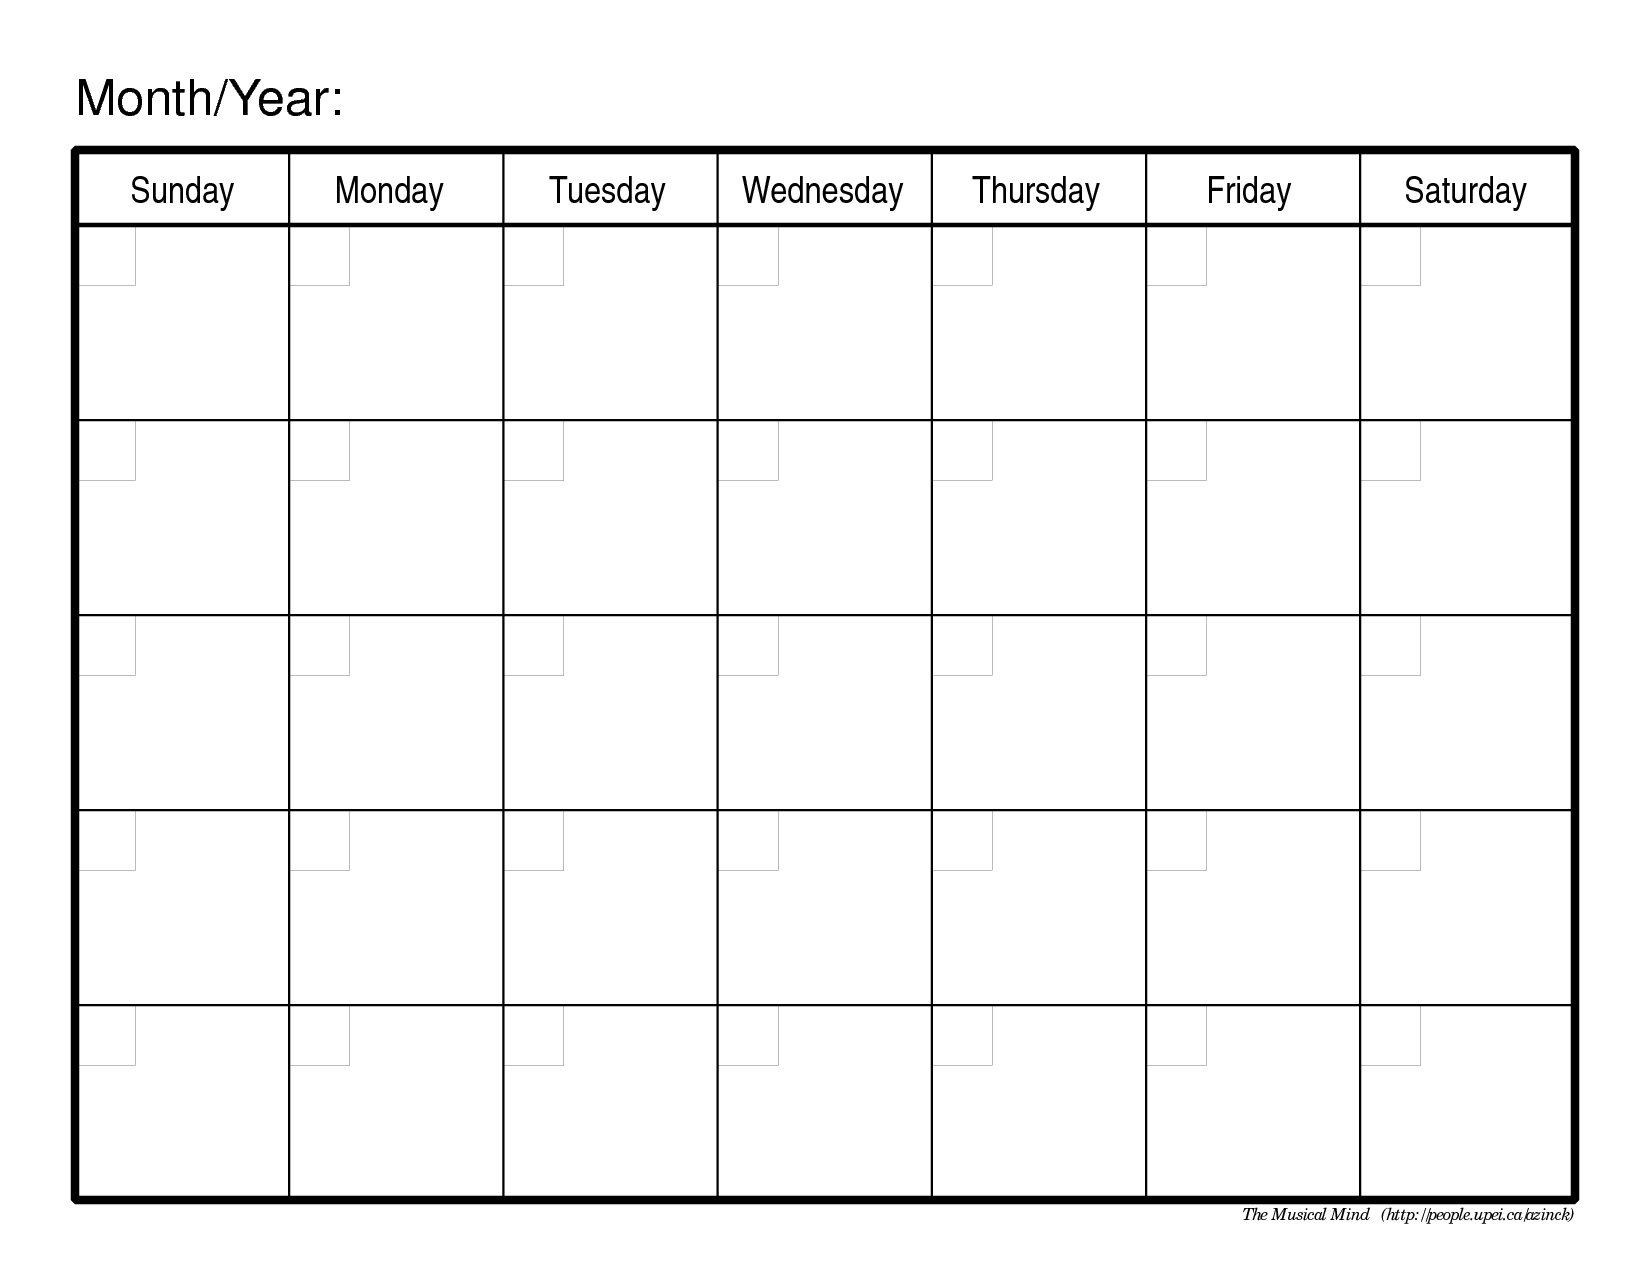 Monday Friday Monthly Calendar Template | Calendar Template-Monday To Friday Printable Monthly Calendar